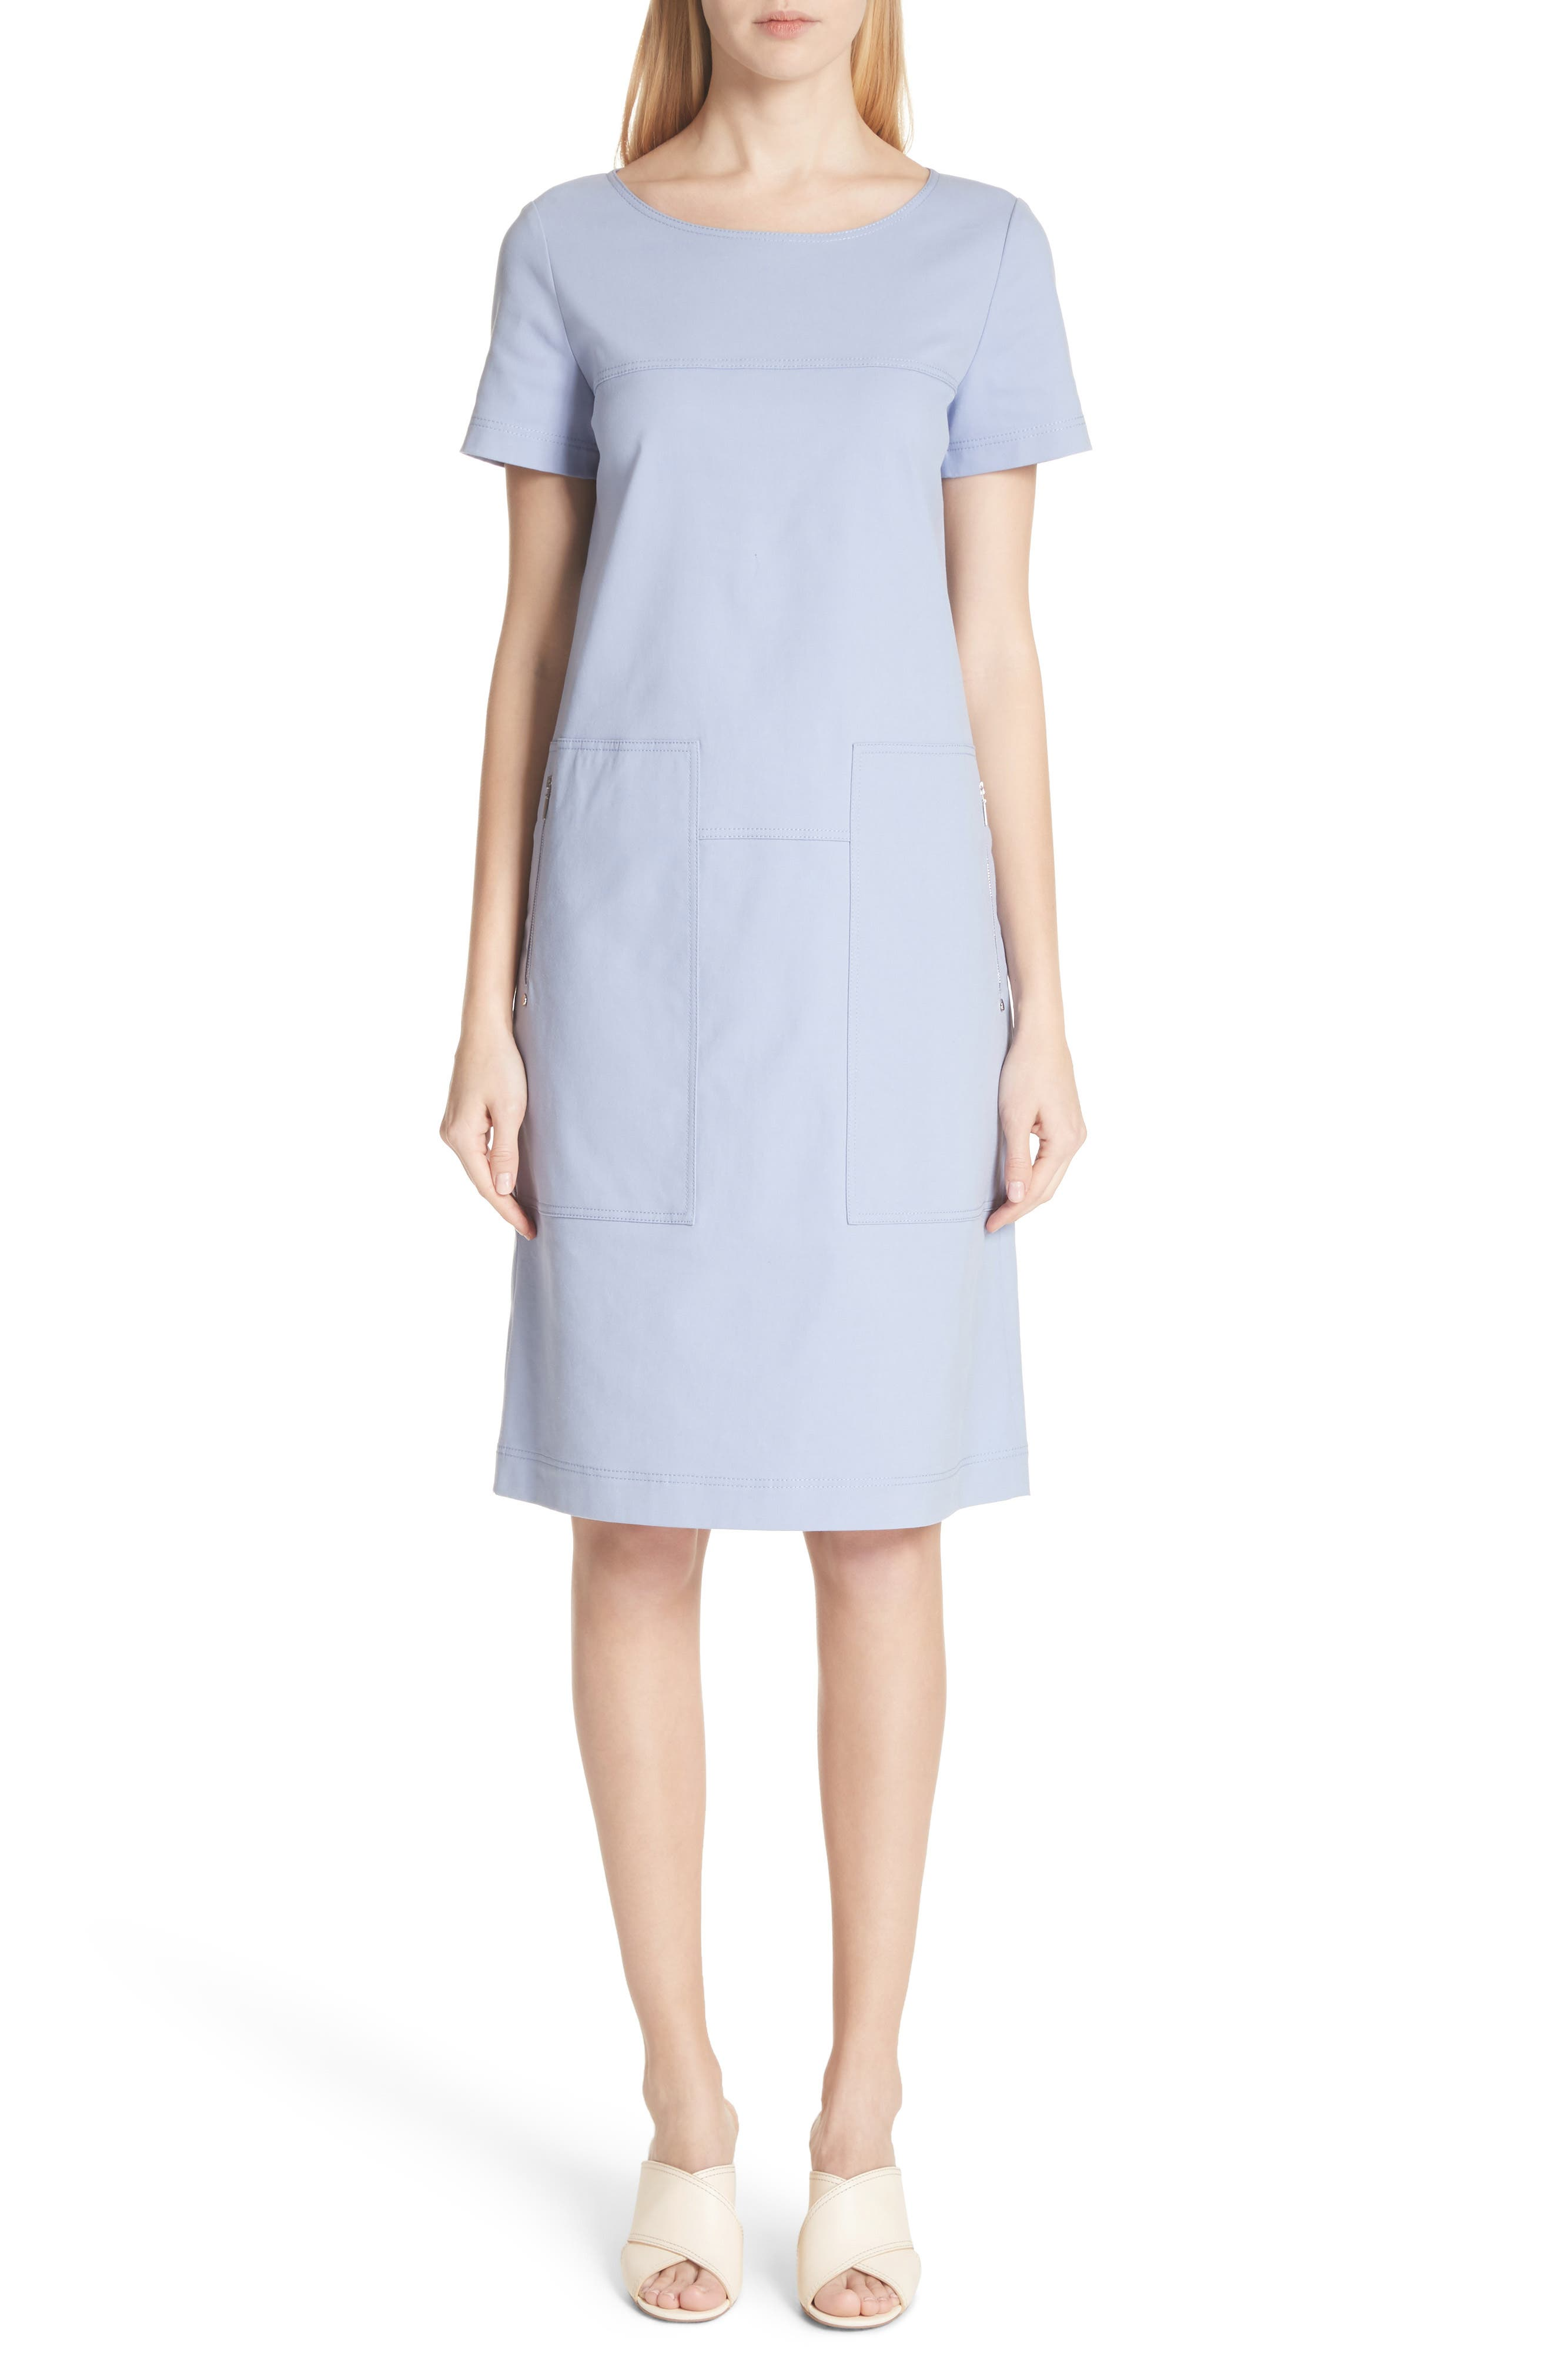 Farah Catalina Stretch Canvas Dress,                             Main thumbnail 1, color,                             438